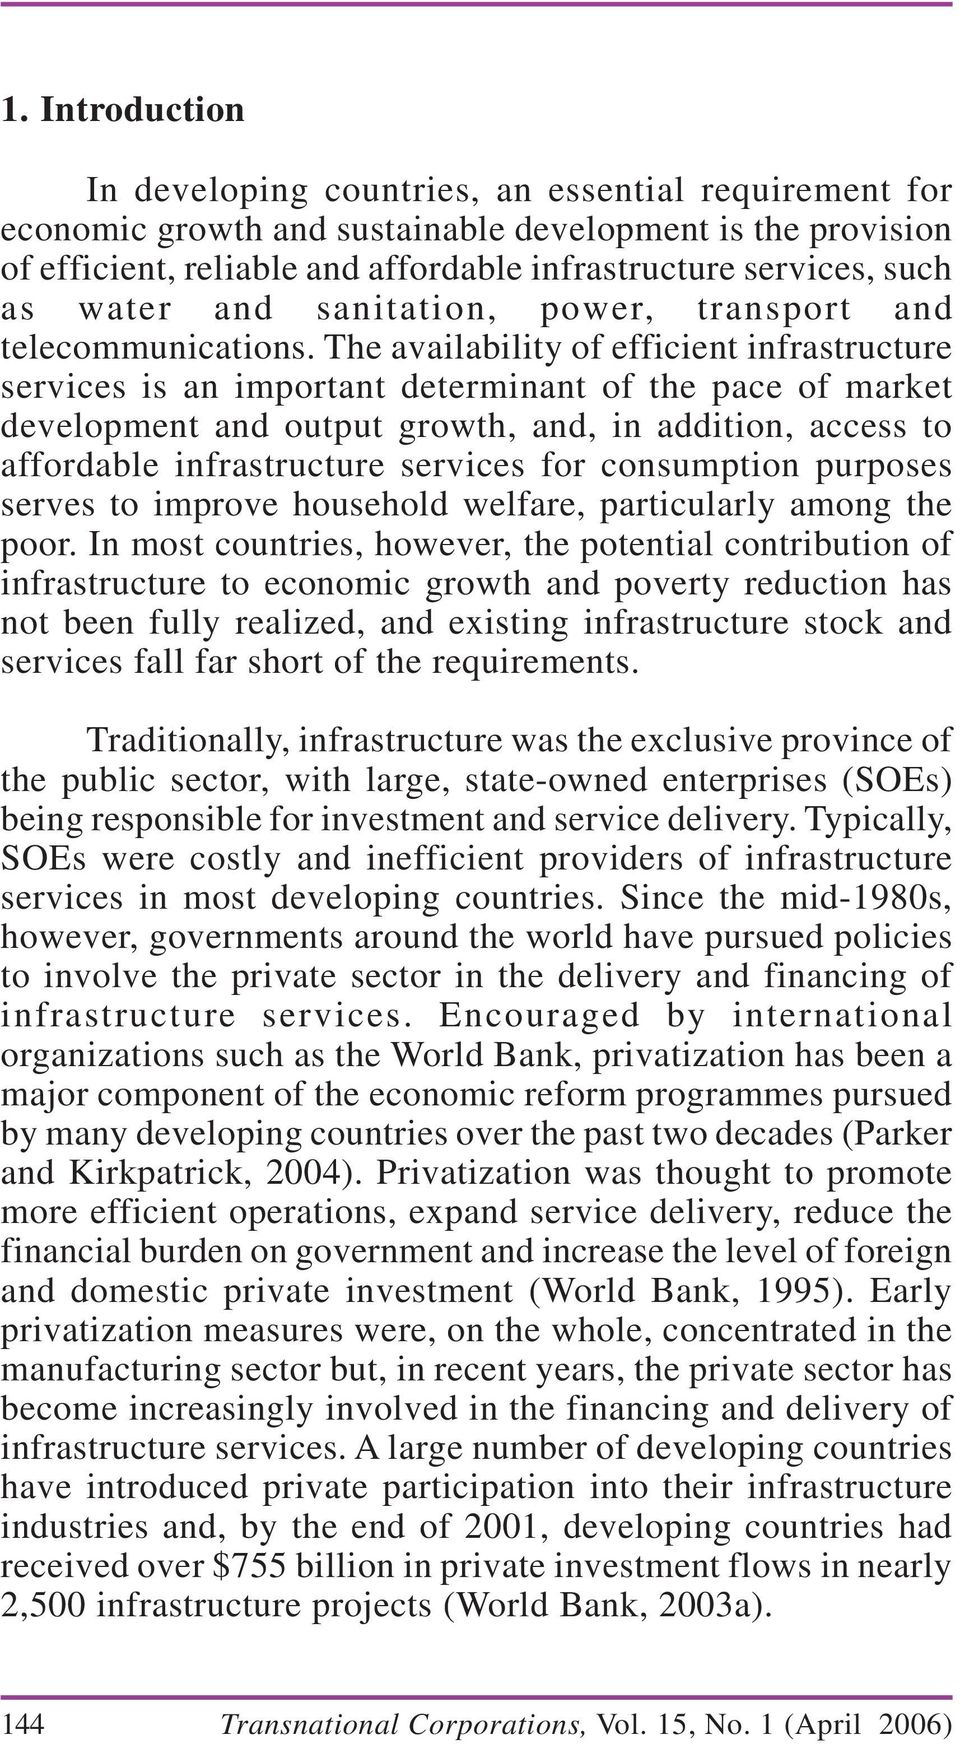 The availability of efficient infrastructure services is an important determinant of the pace of market development and output growth, and, in addition, access to affordable infrastructure services